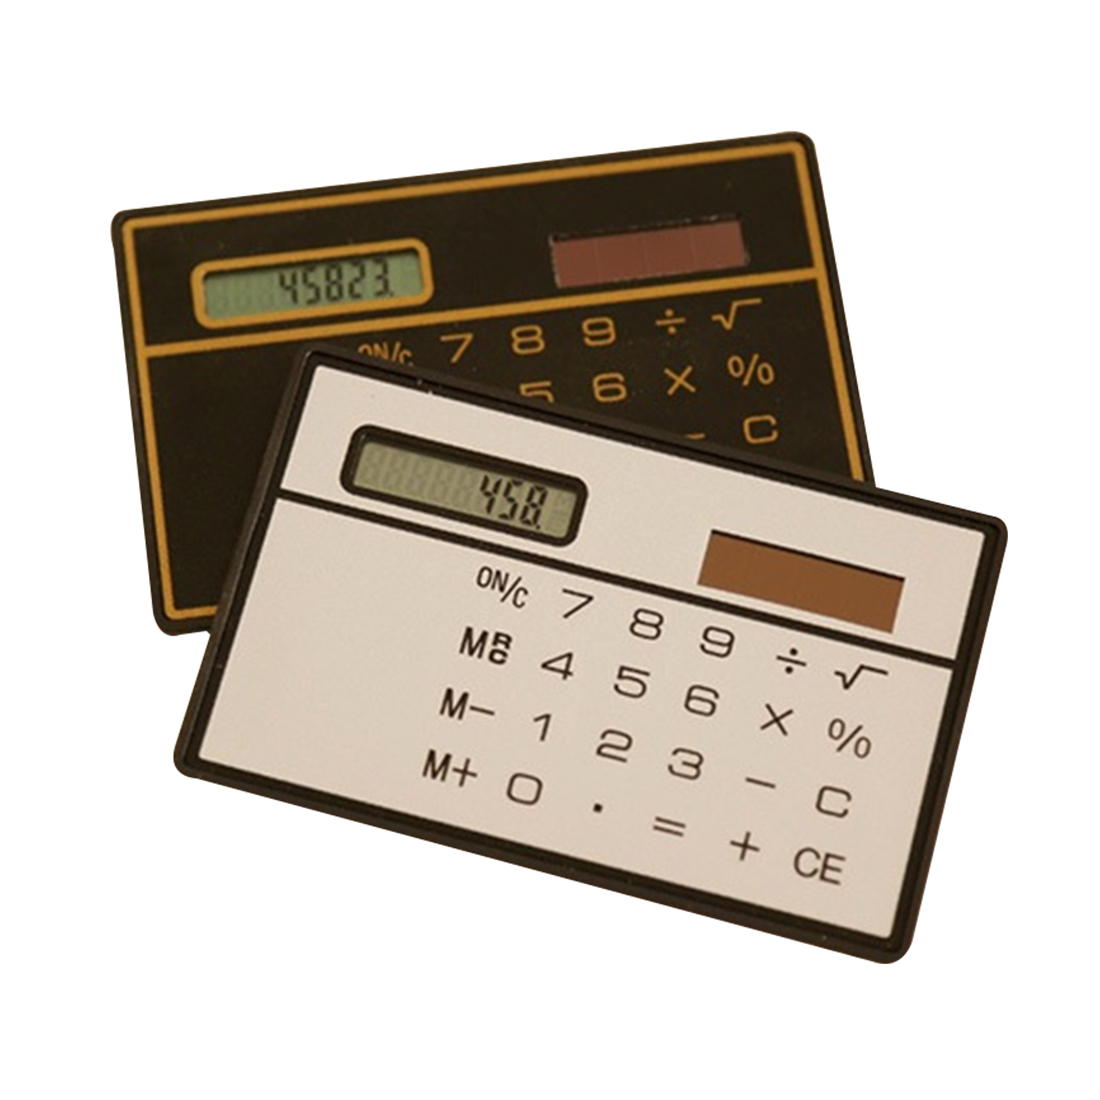 Etmakit pocket calculator Slim Credit Card Cheap Solar Power Pocket Calculator Novelty Small Travel Compact etmakit office home calculator office worker school calculator portable pocket electronic calculating calculator newest